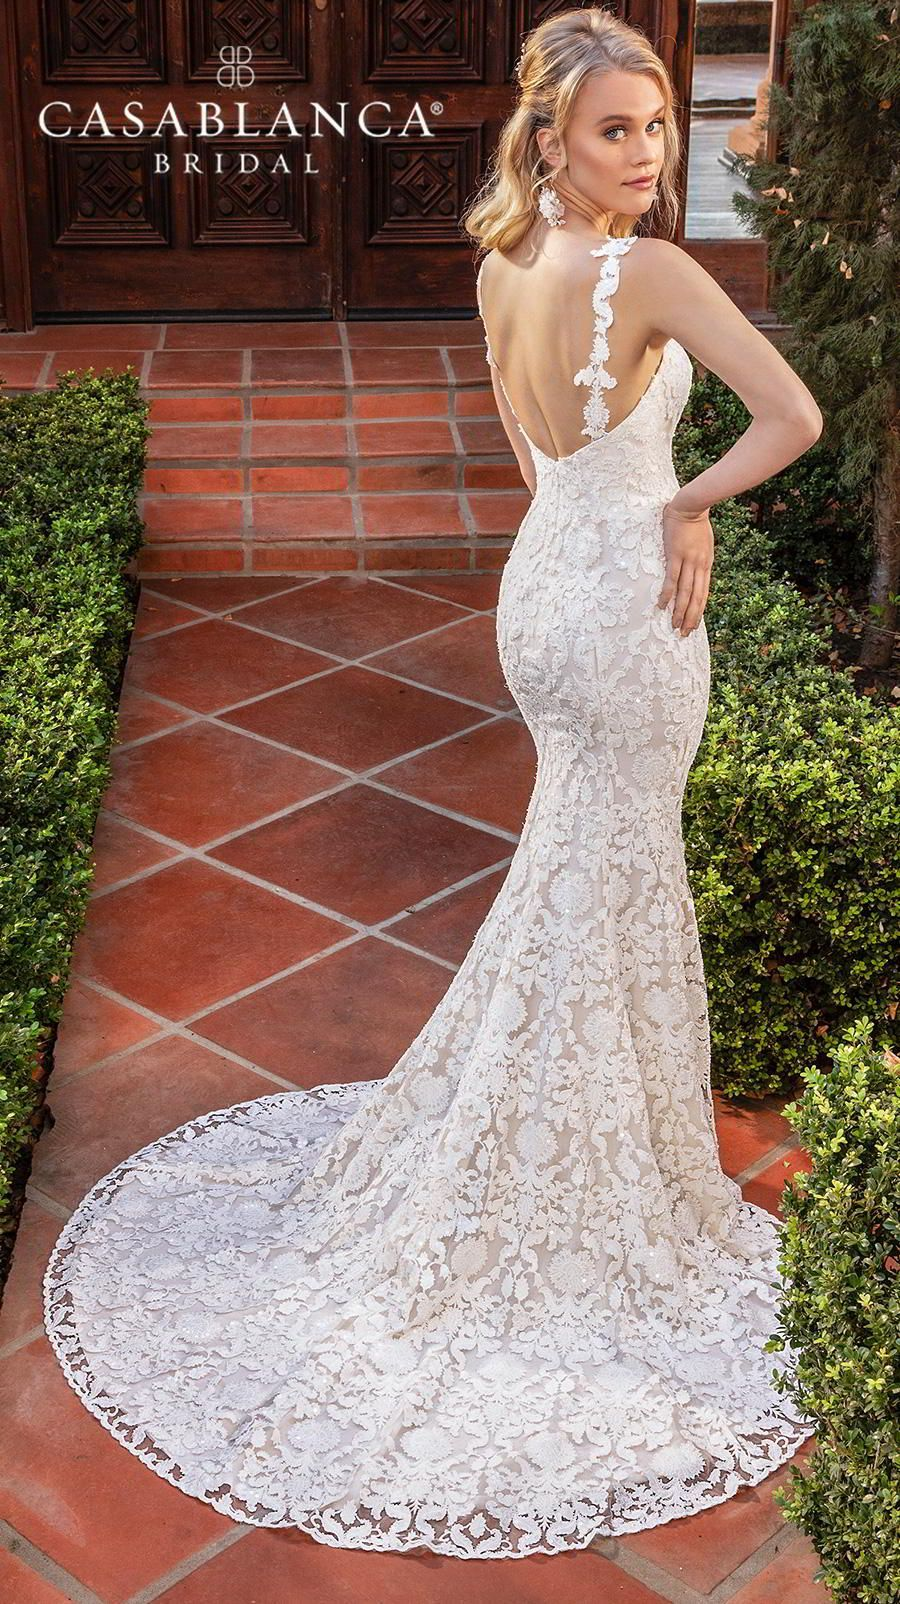 Forever Yours, Casablanca Bridal's Stunning Fall 2019